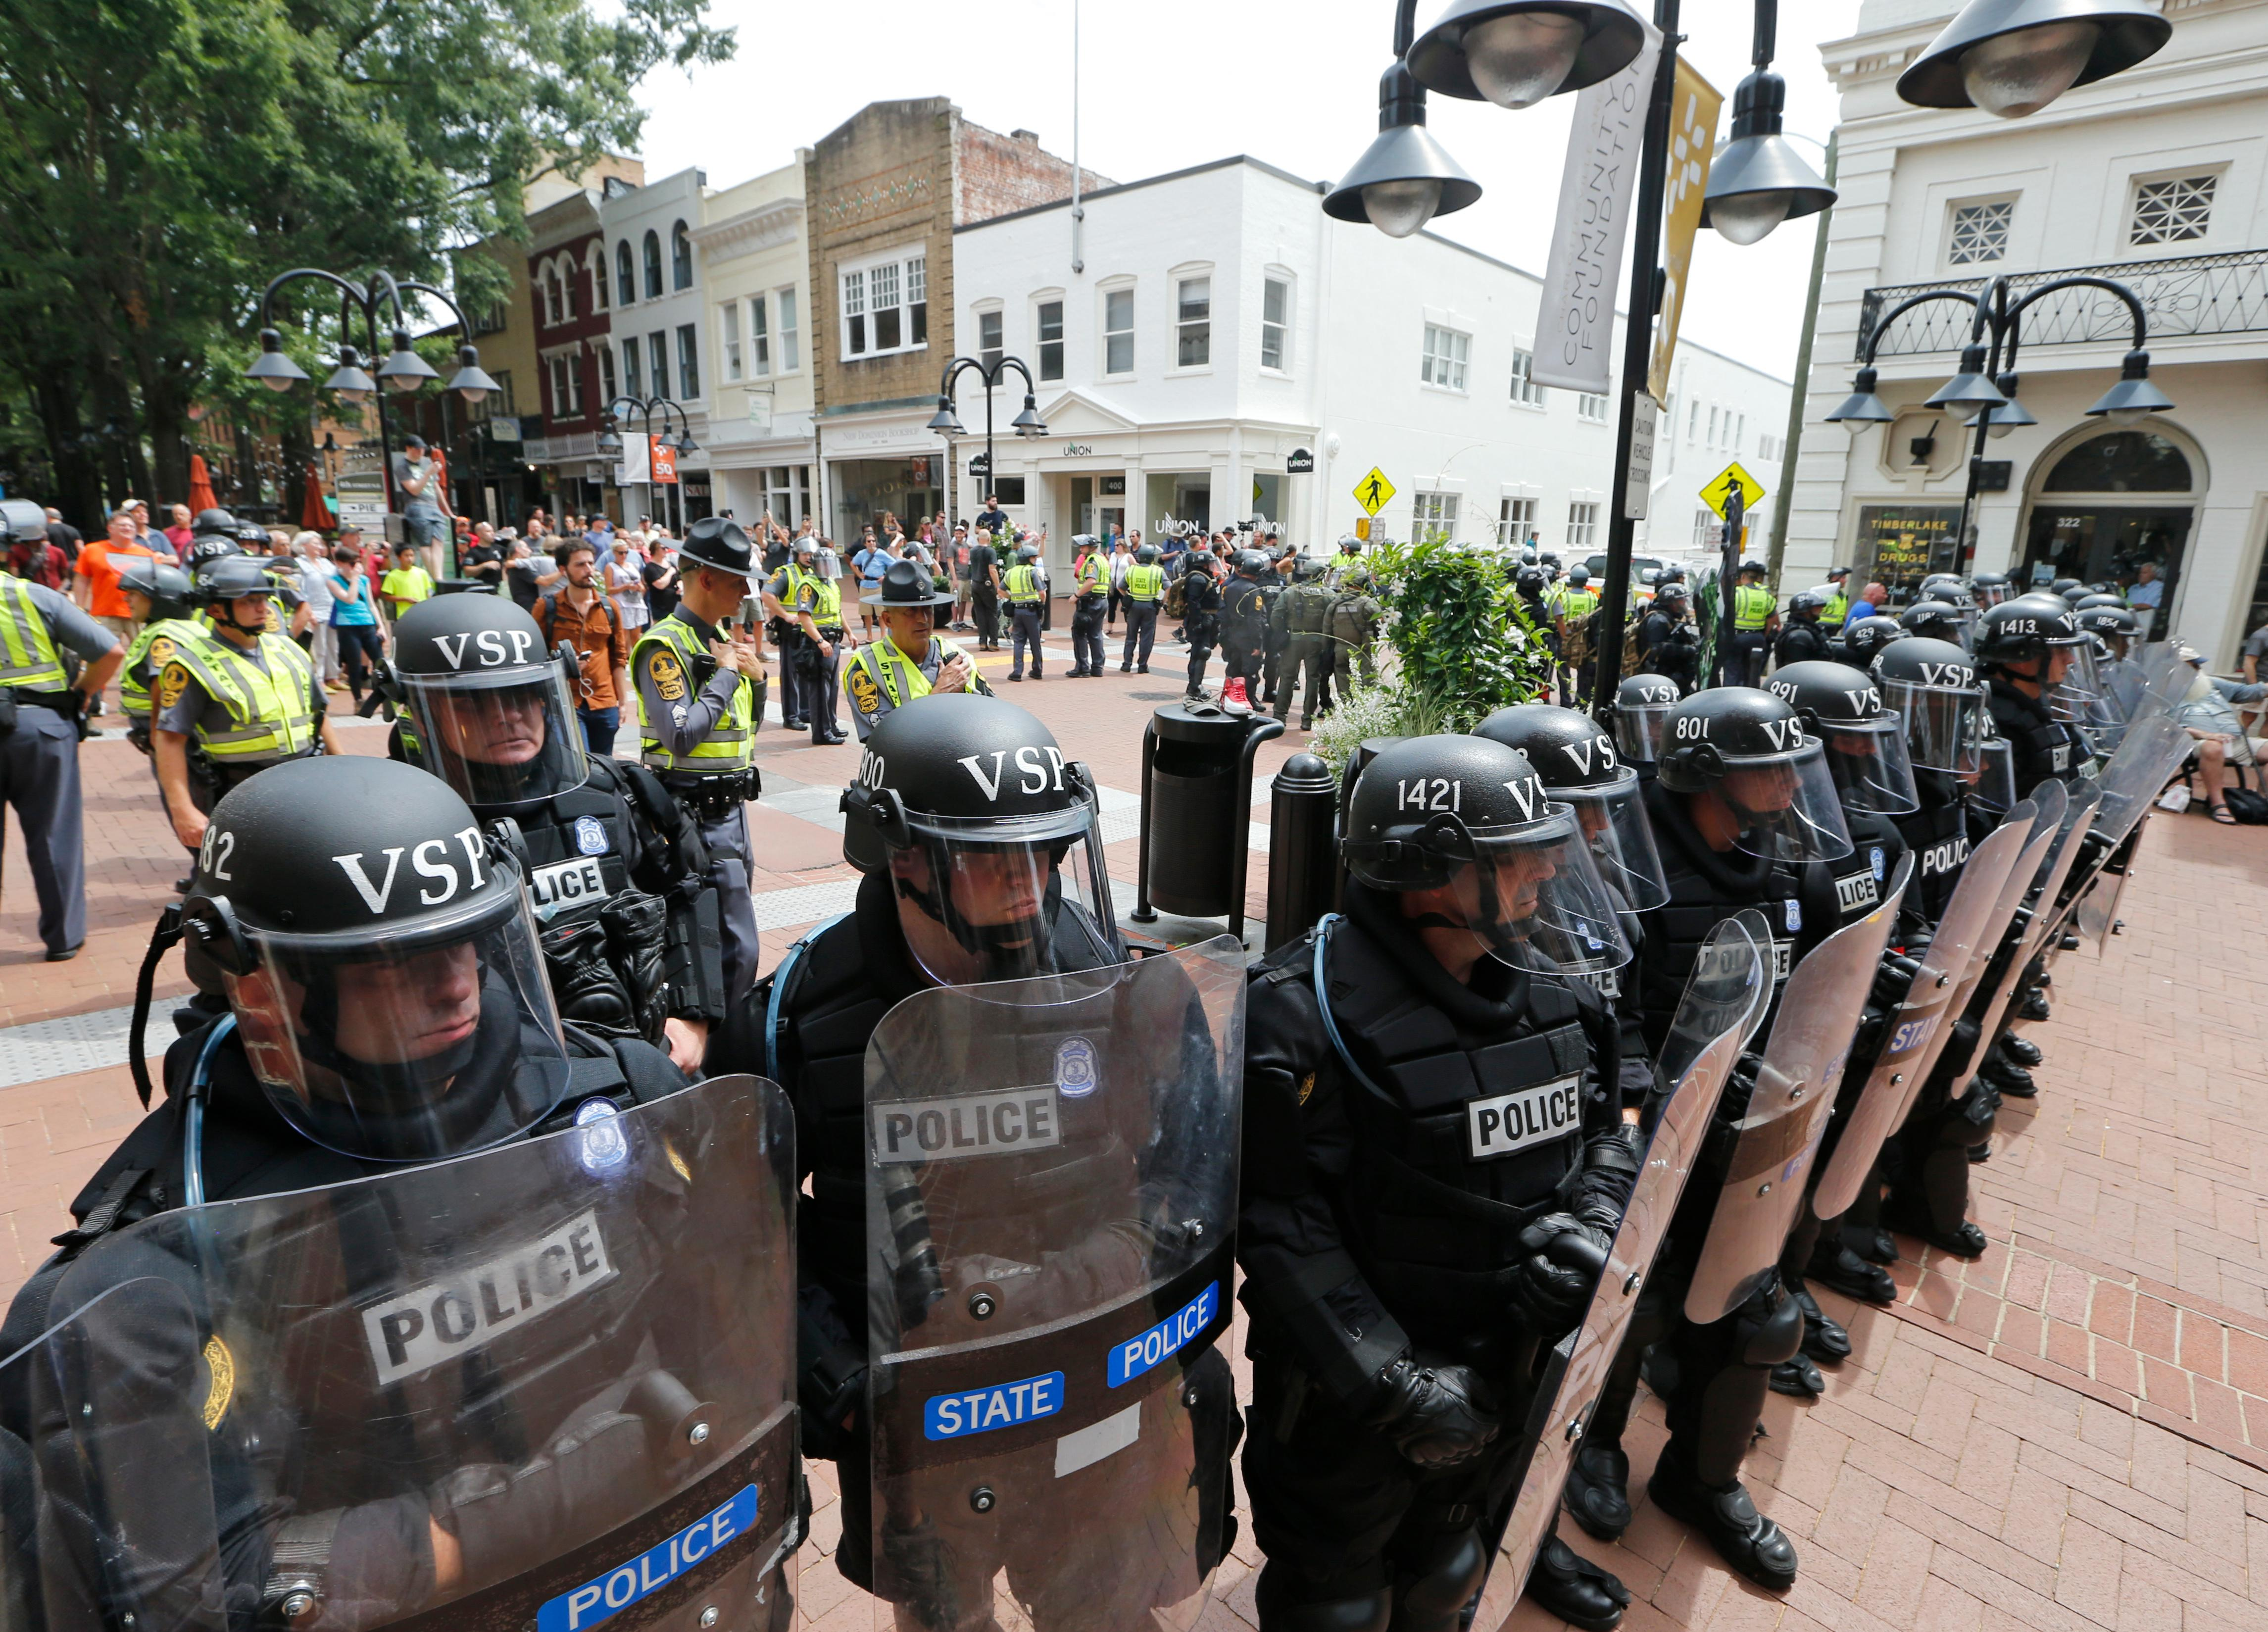 Virginia State Police cordon off an area around the site where a car ran into a group of protesters after a white nationalist rally in Charlottesville, Va., Saturday, Aug. 12, 2017. (AP Photo/Steve Helber)